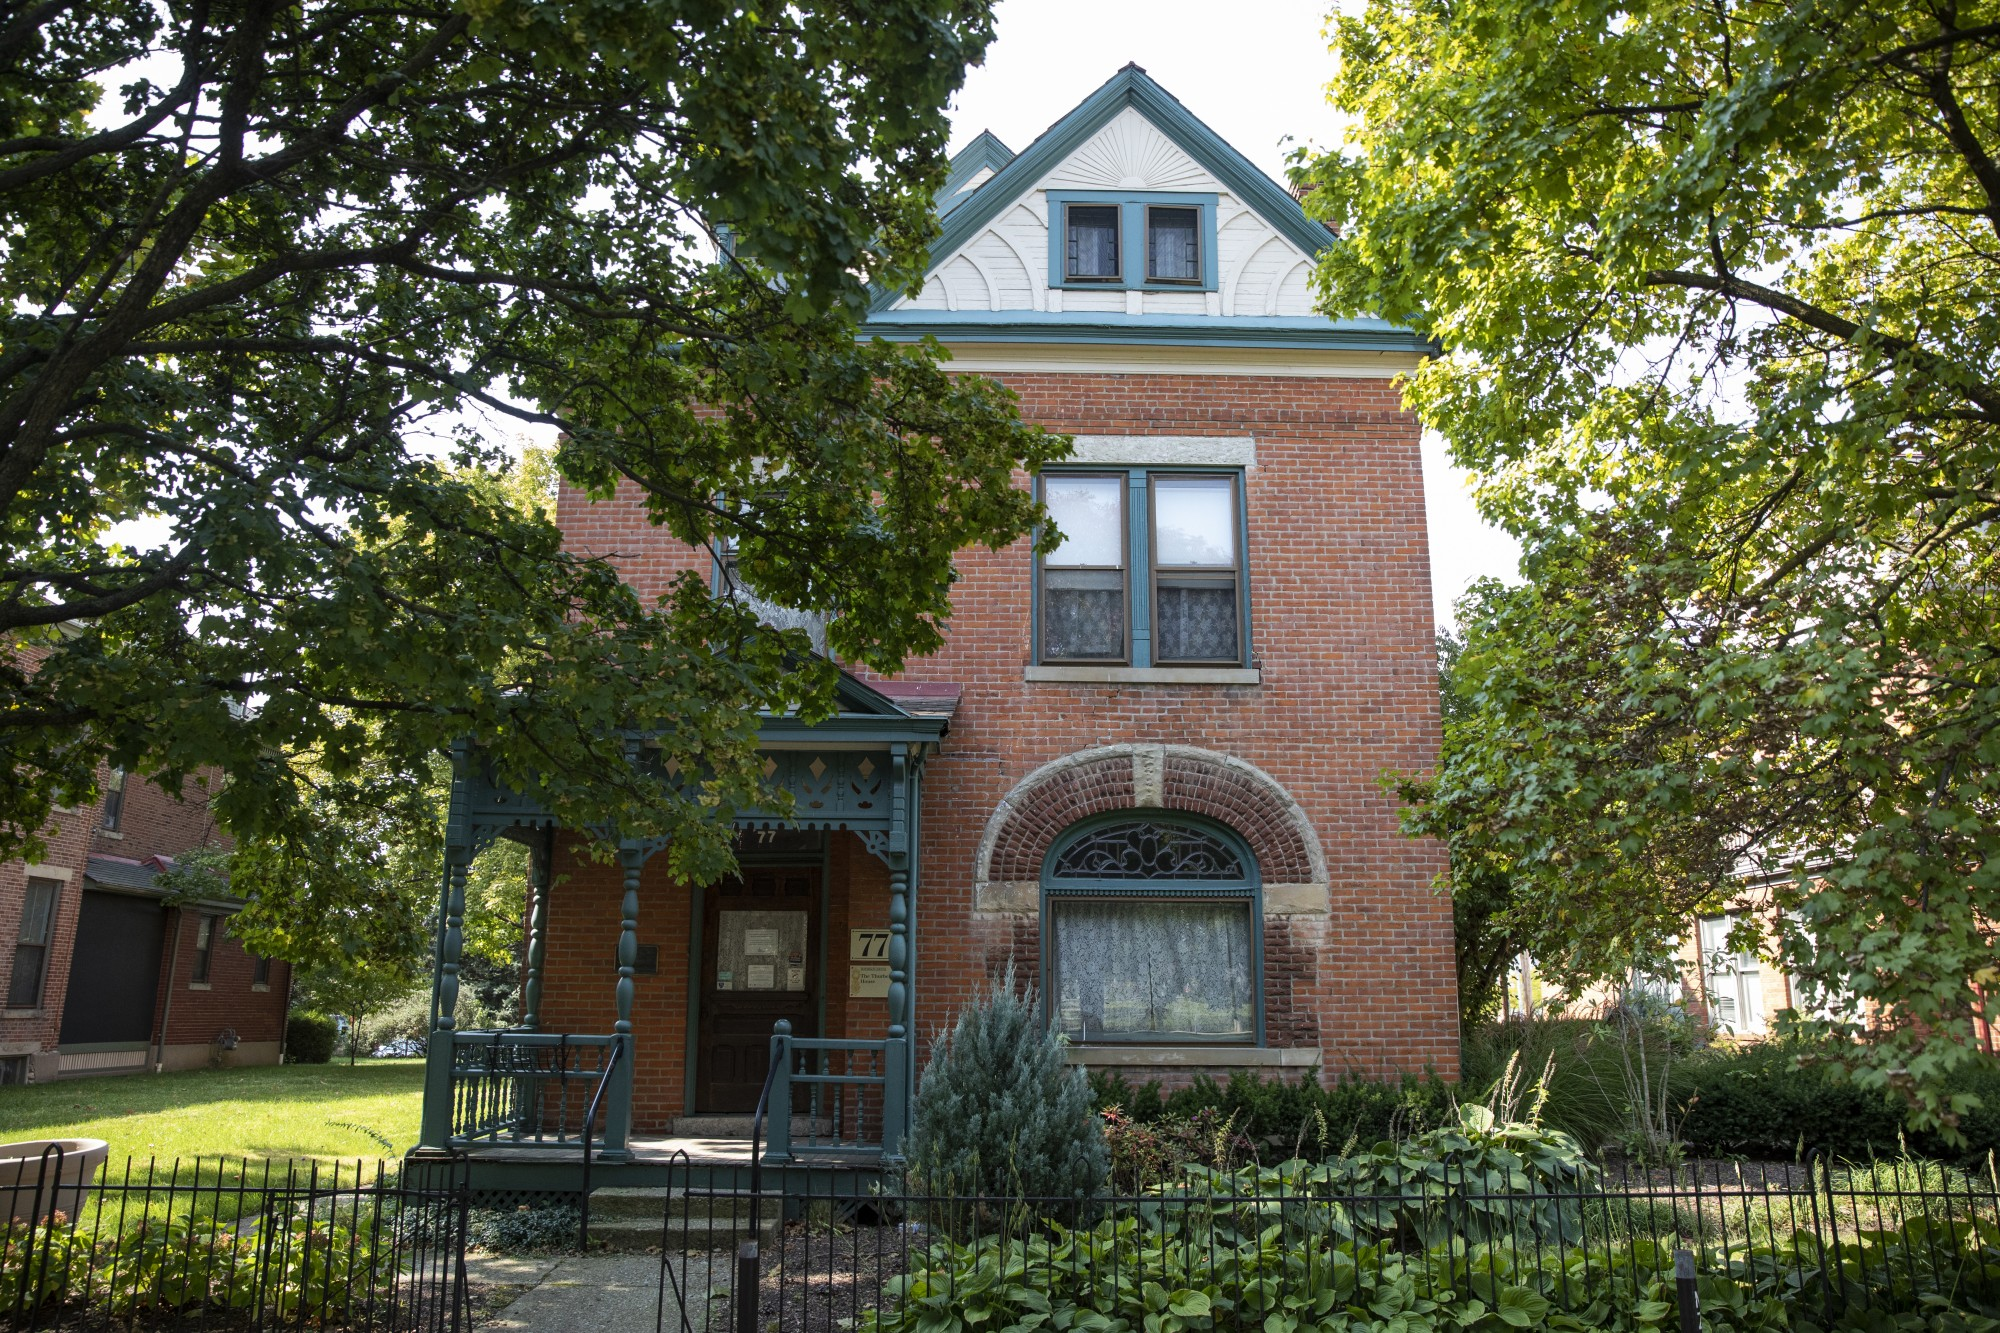 The Thurber House in Columbus, Ohio.